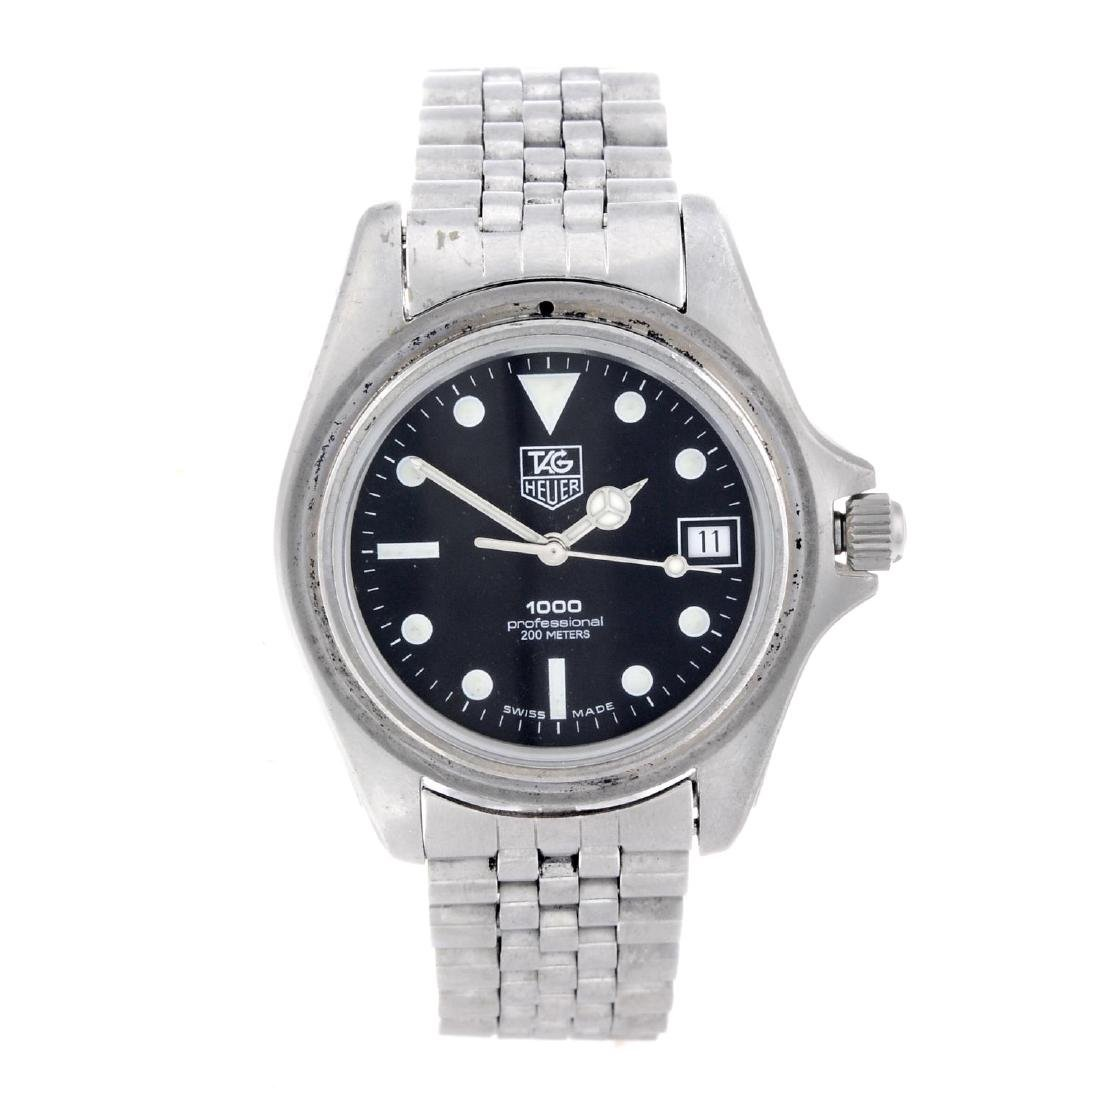 TAG HEUER - a gentleman's 1000 Series bracelet watch.